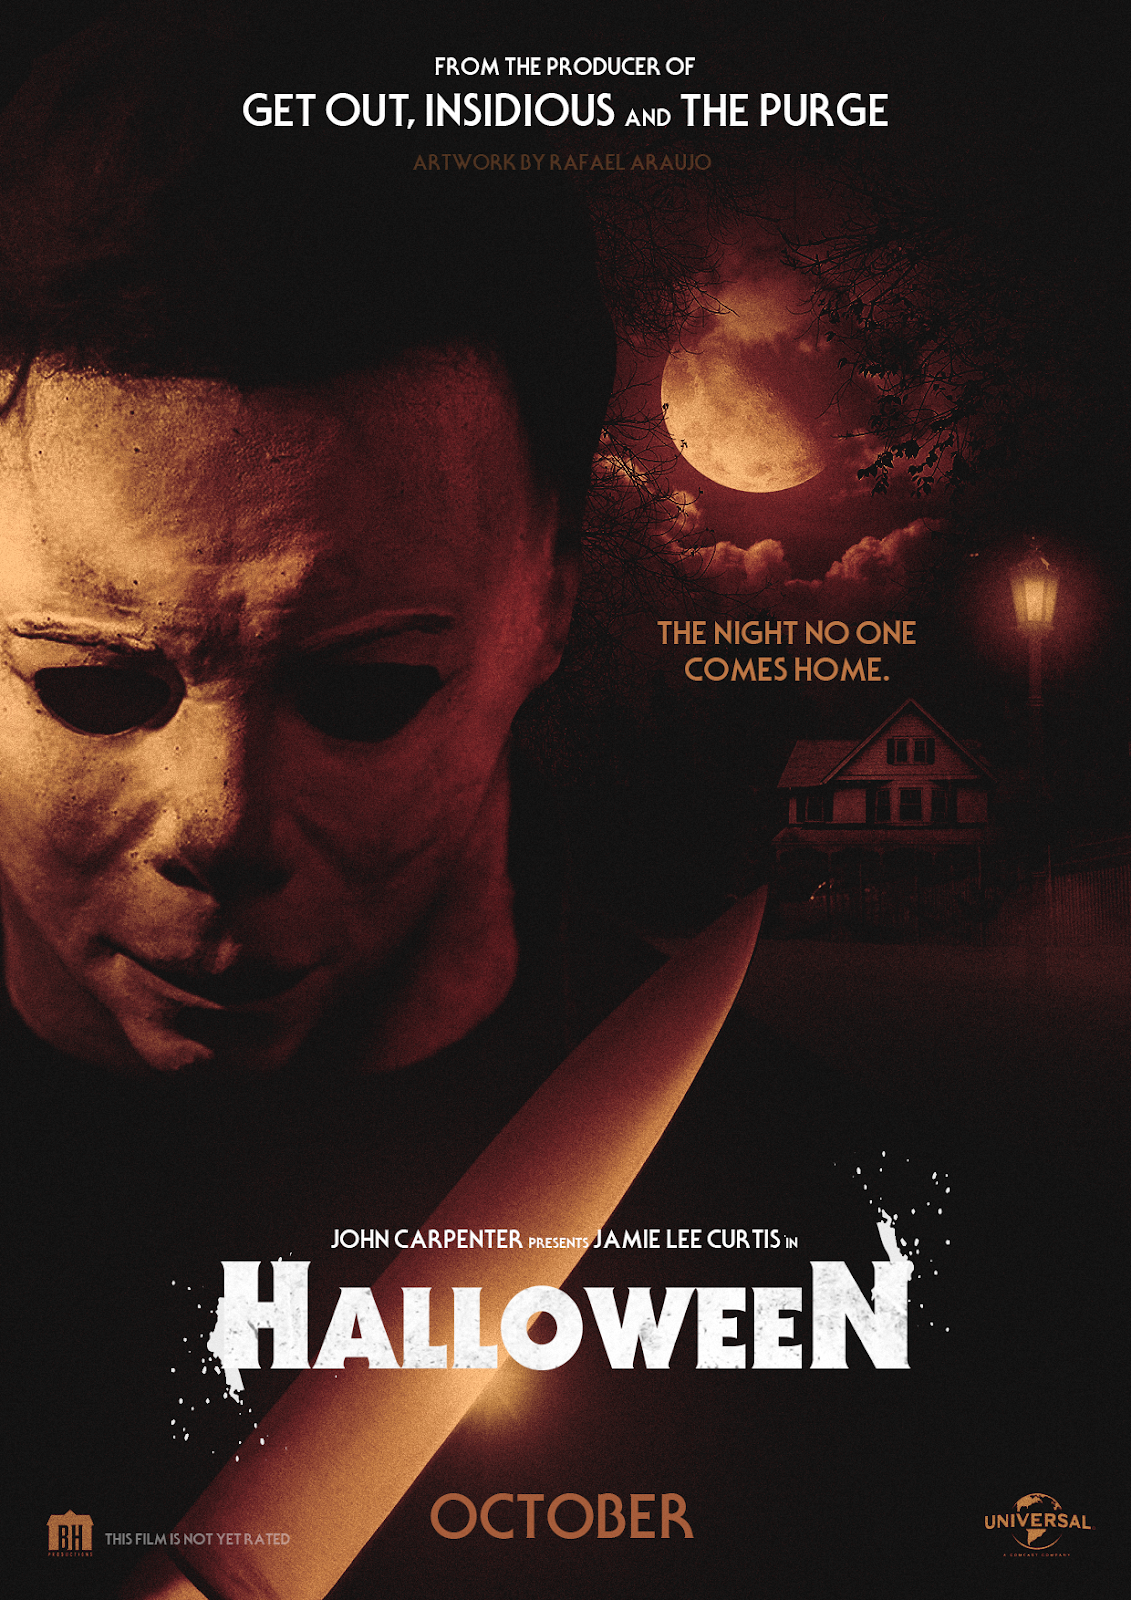 The Horrors of Halloween: HALLOWEEN (2018) Fan Artwork Posters